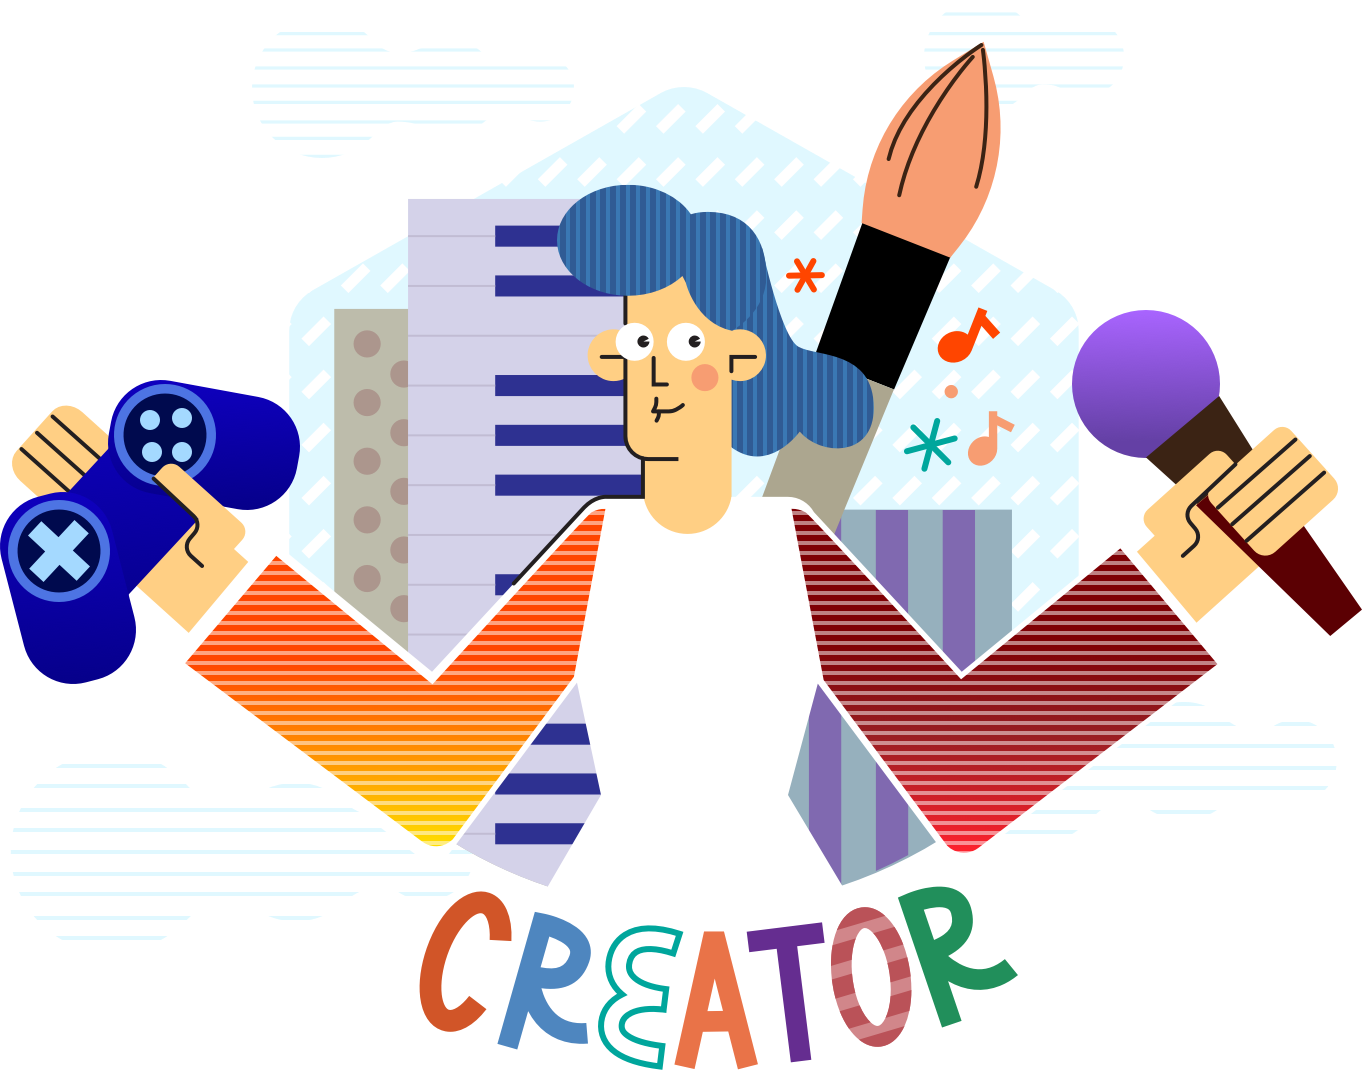 The Future of Creator Support. - Enabling a new class of digitalcelebrity to make a living by changinghow value is exchanged betweencreators and their fans.———